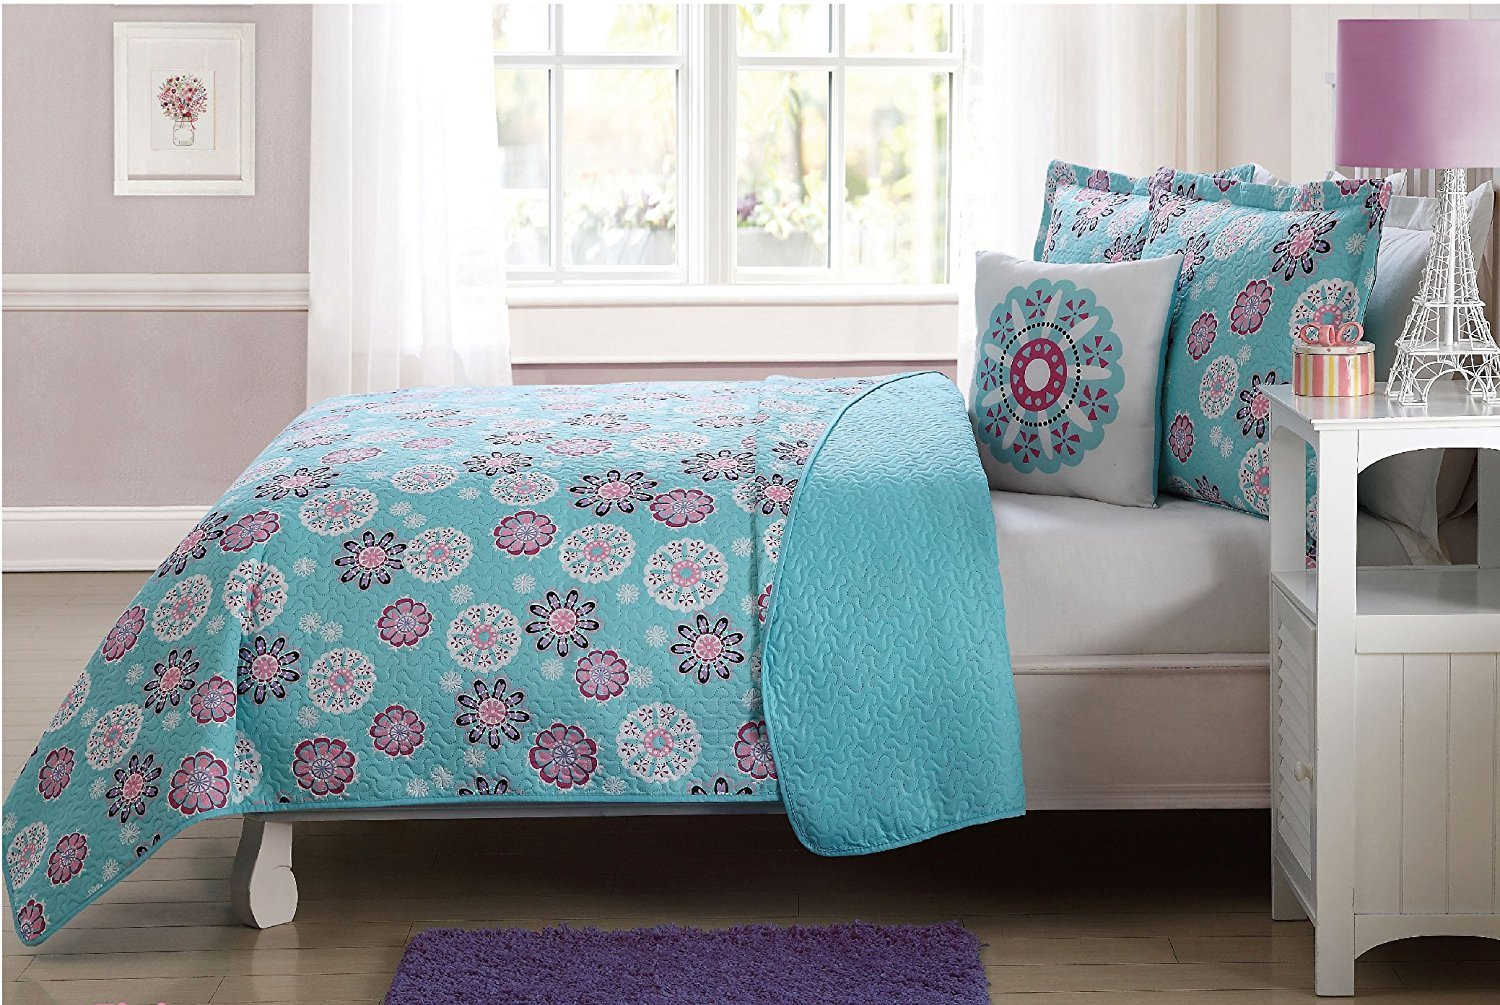 Elegant Home Multicolors Blue Turquoise Pink White Floral Flowers Flakes Design Fun Printed Reversible Cozy Colorful 3 Piece Quilt Bedspread Set with Decorative Pillow for Kids/Girls (Twin Size)